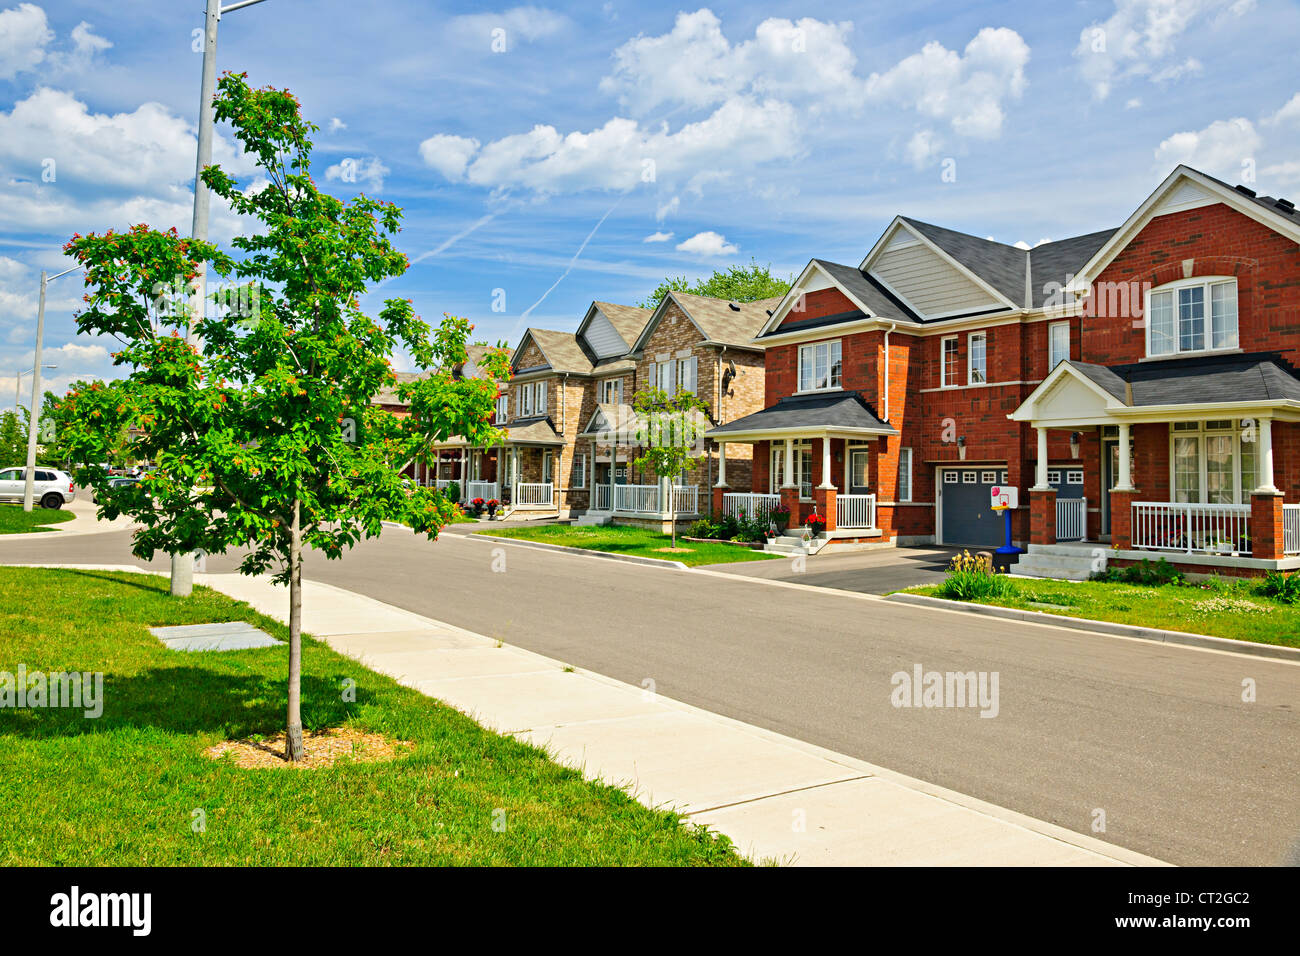 Suburban residential street with red brick houses - Stock Image